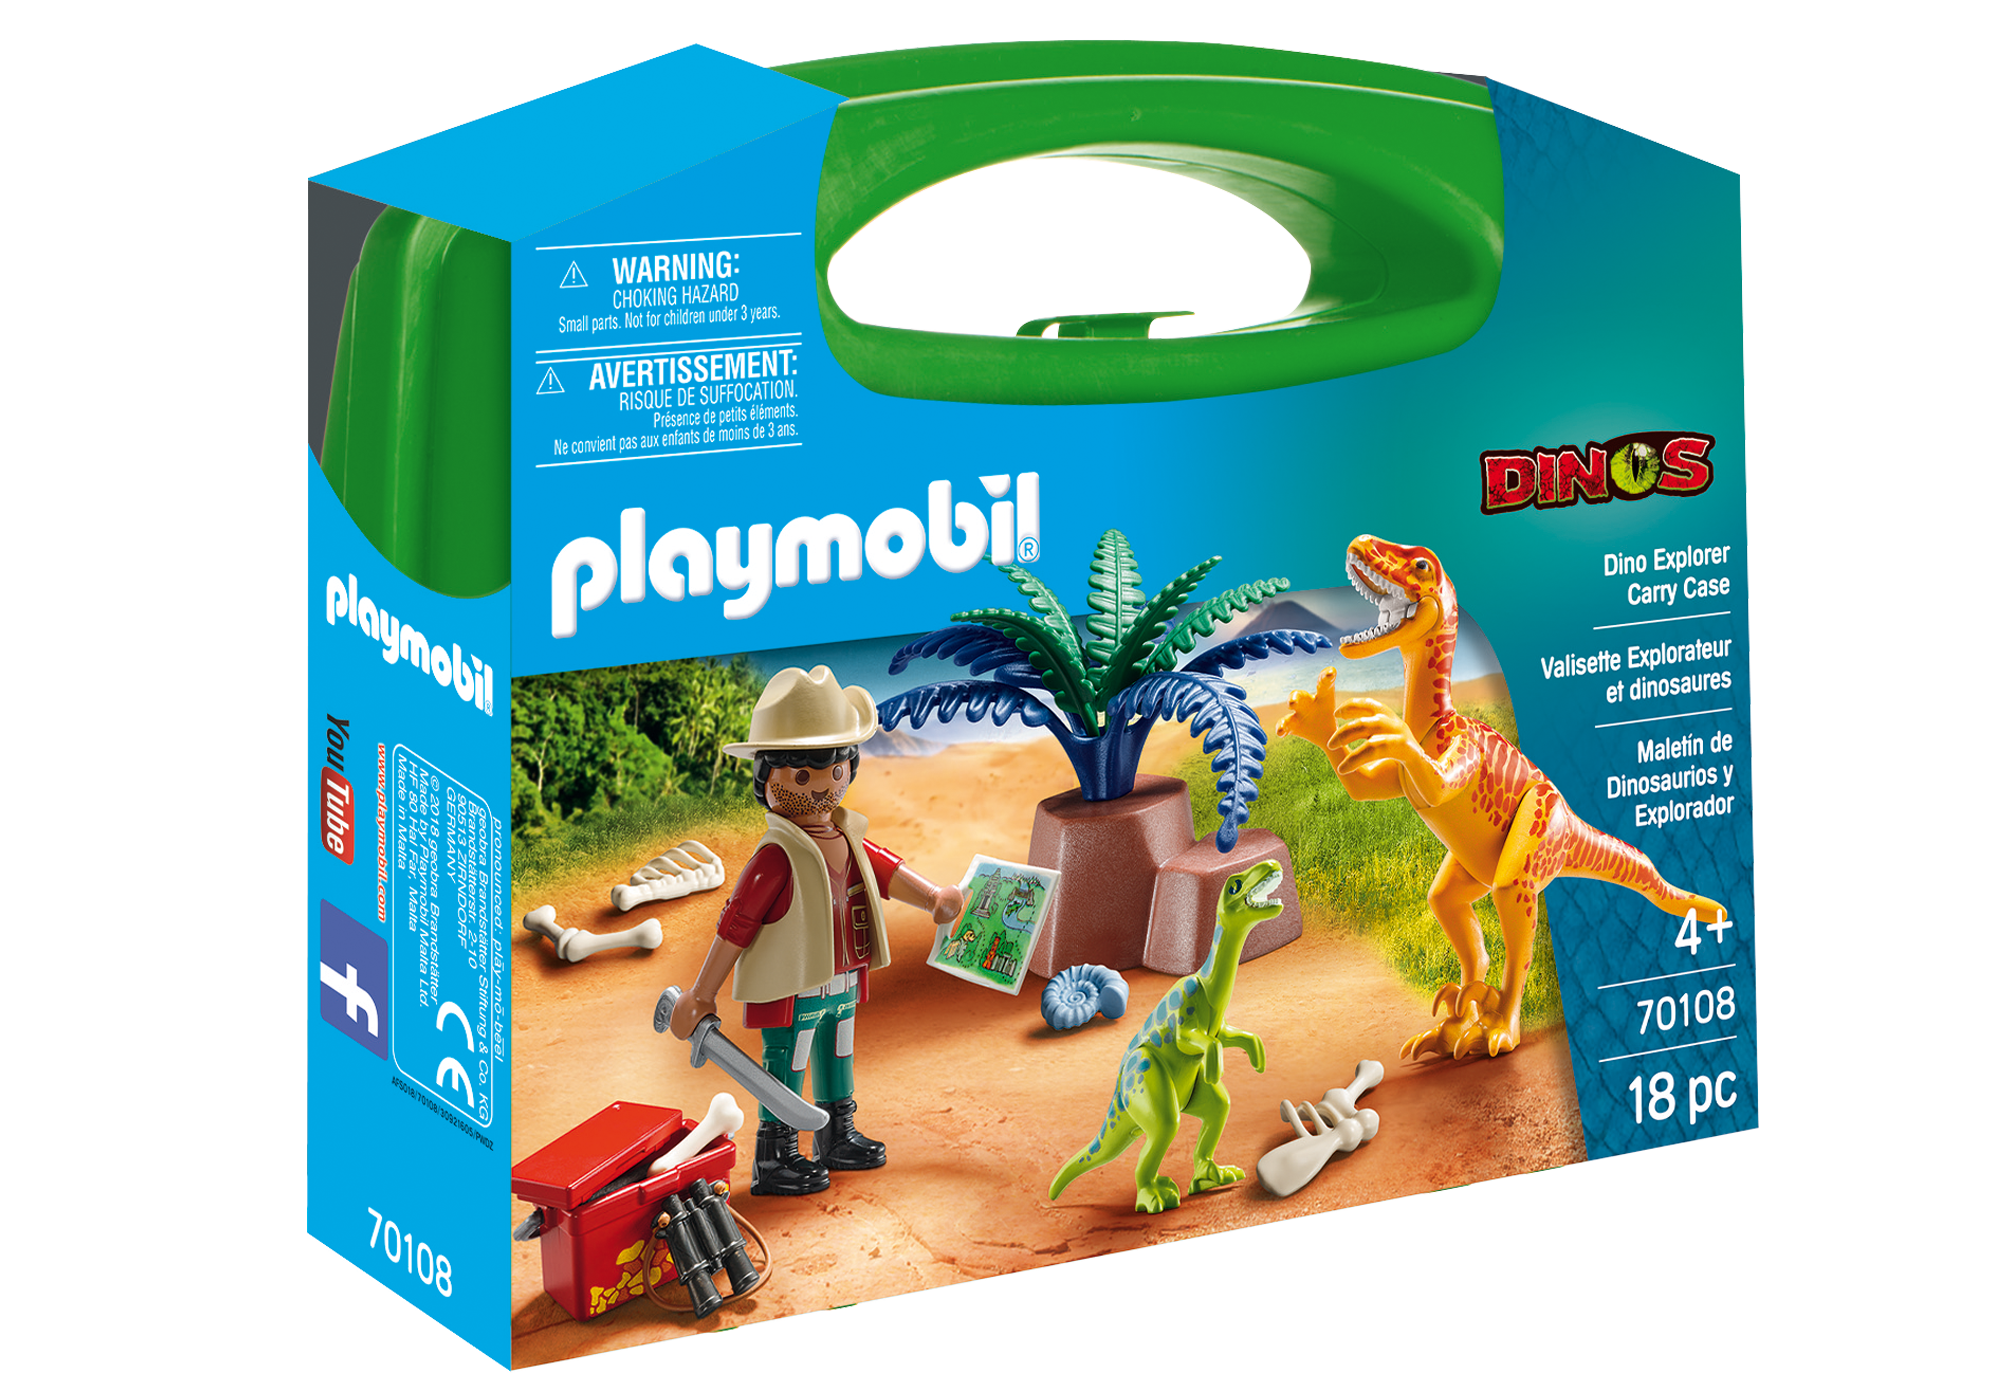 http://media.playmobil.com/i/playmobil/70108_product_box_front/Dino Explorer Carry Case L